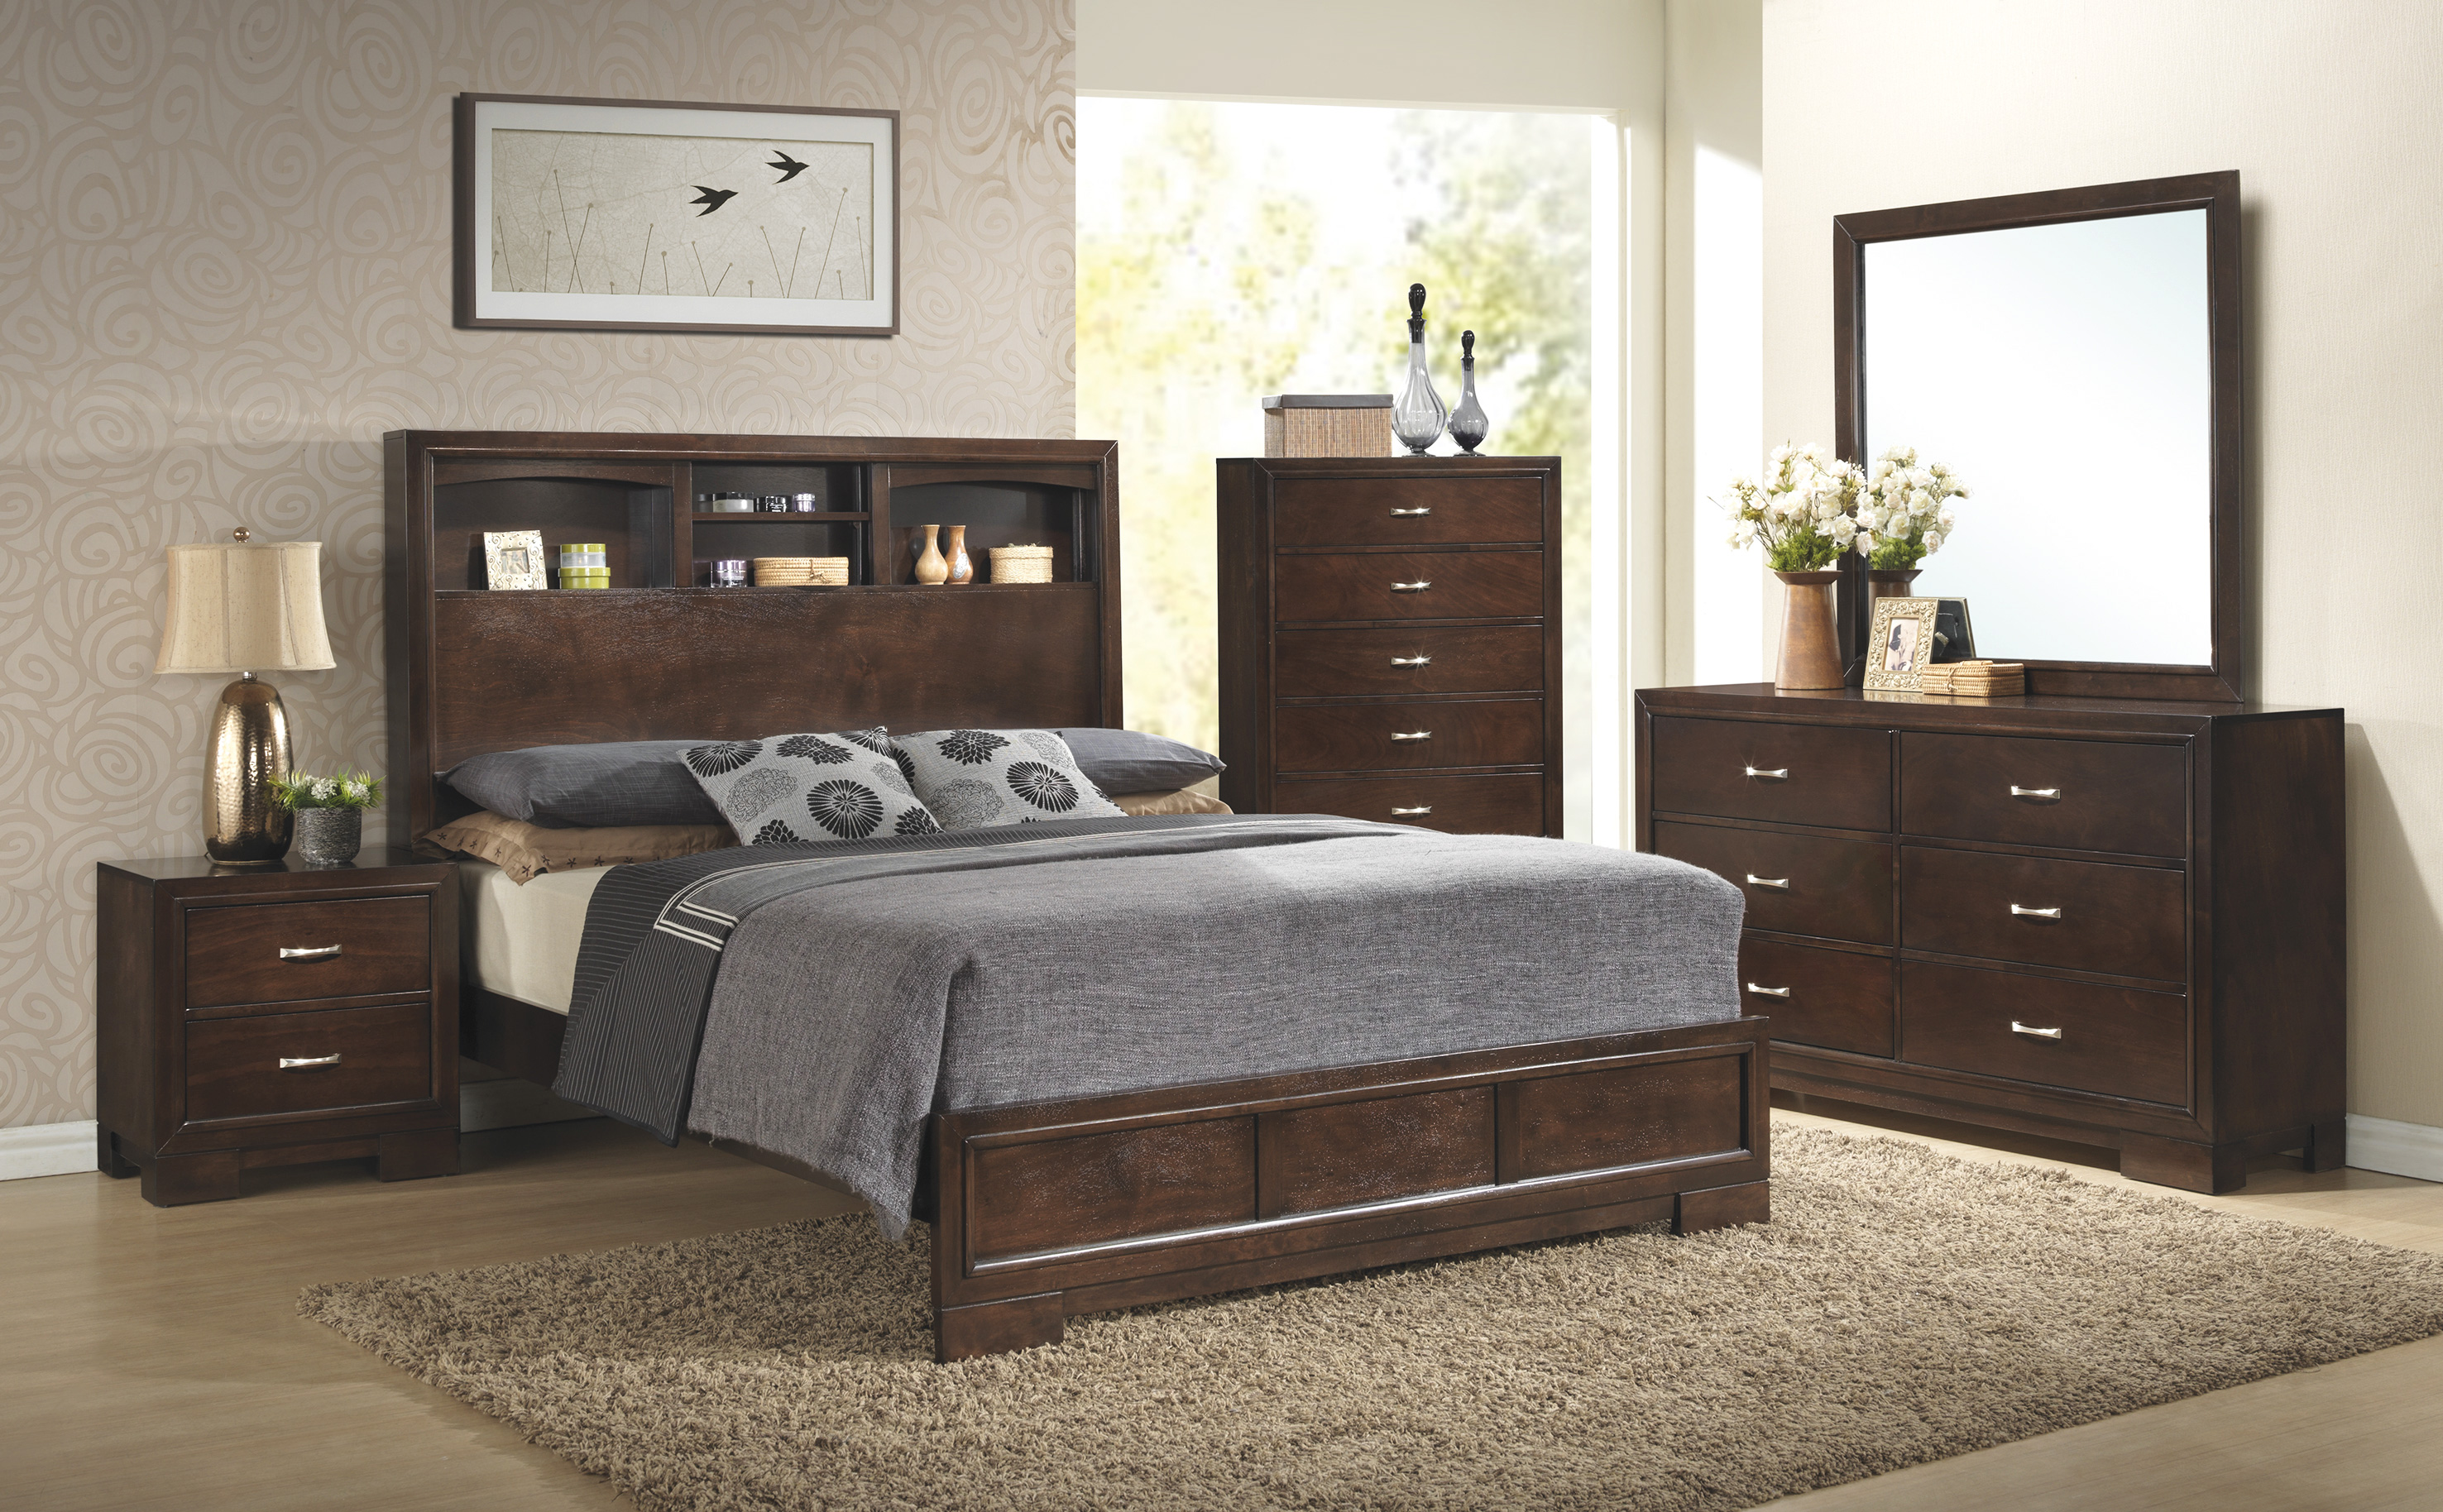 C4233a Walnut Bedroom Awfco Catalog Site